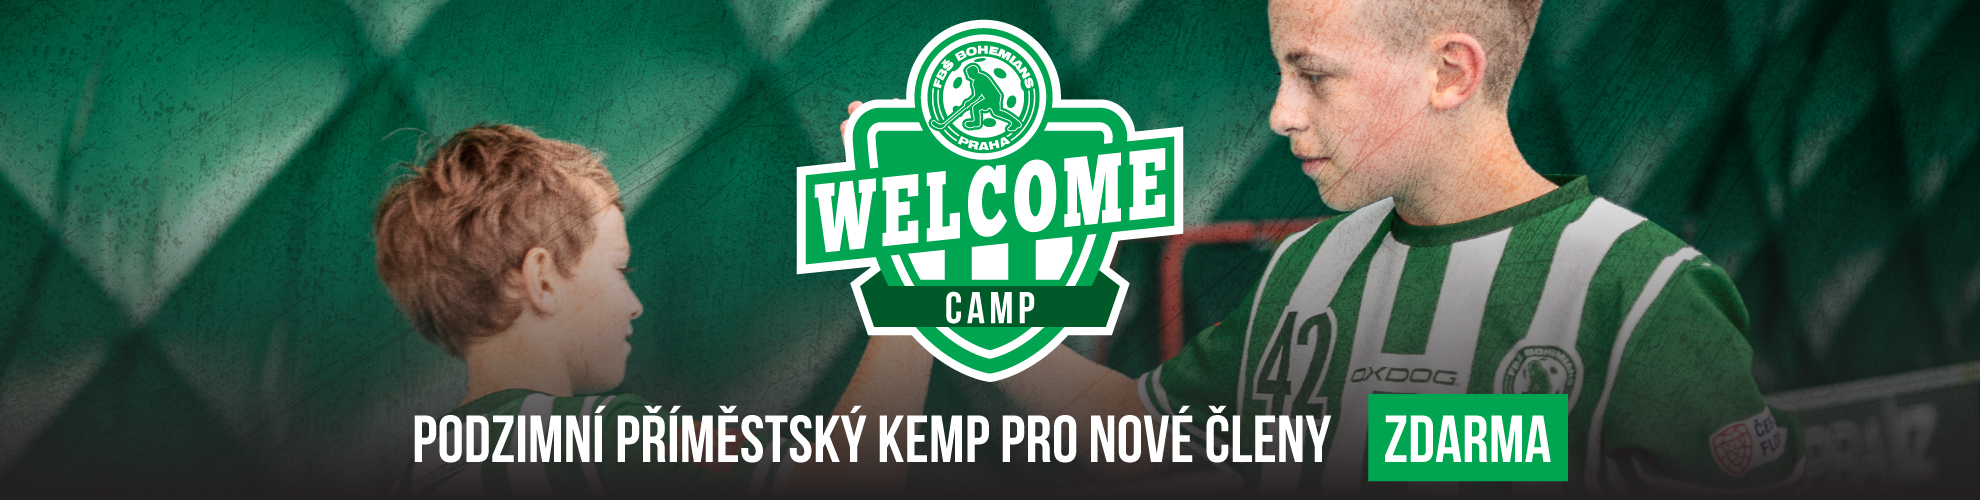 Welcome Camp 2021